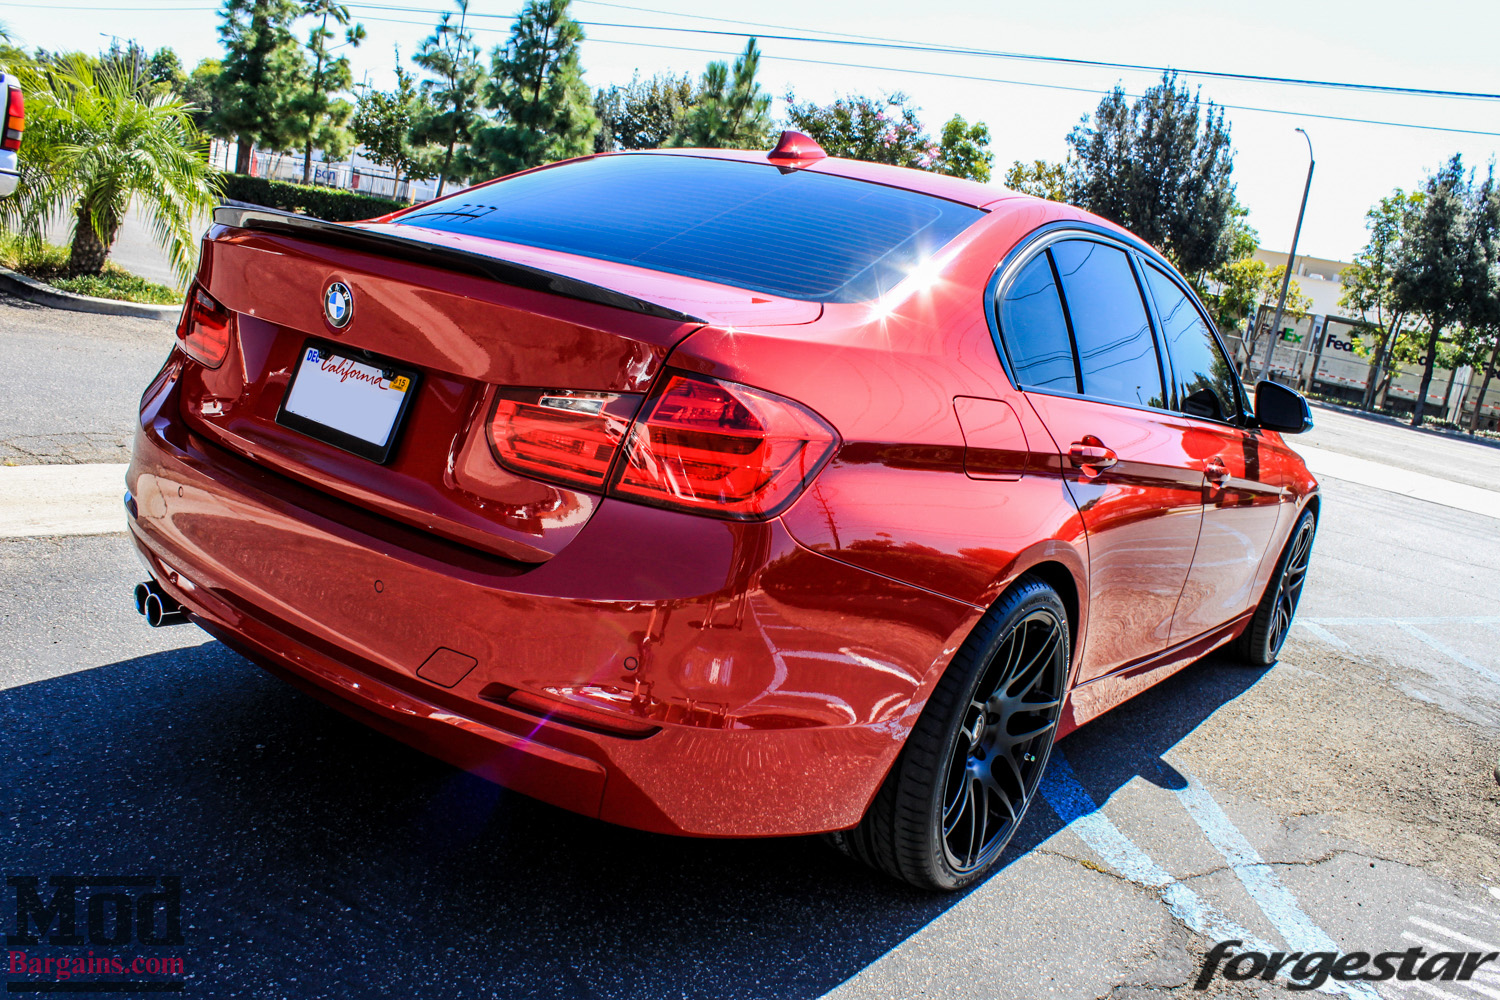 Bmw Official Website >> Red Bmw 3 Series Black Rims | www.pixshark.com - Images Galleries With A Bite!